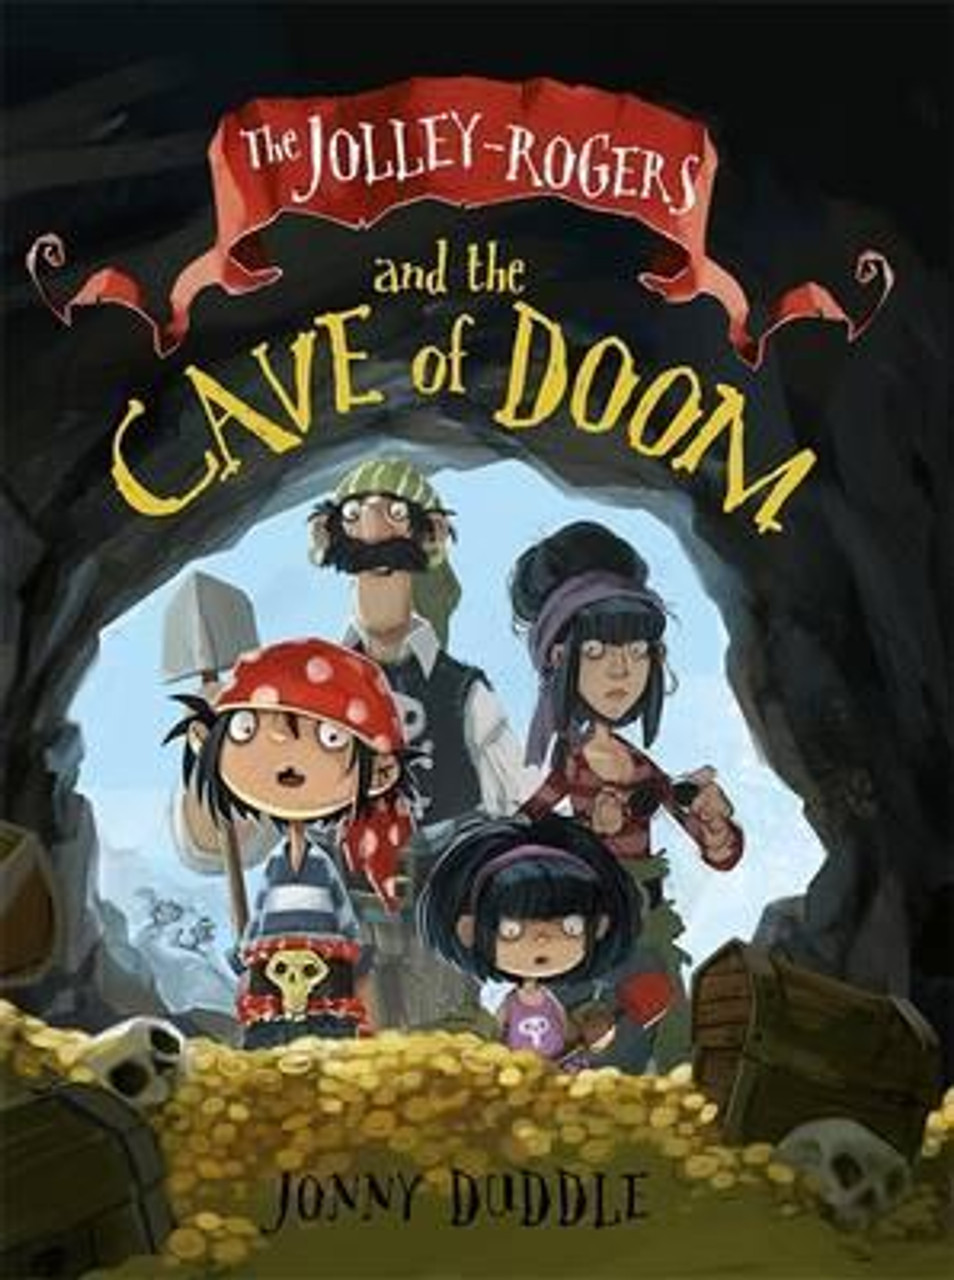 Duddle, Jonny / The Jolley-Rogers and the Cave of Doom